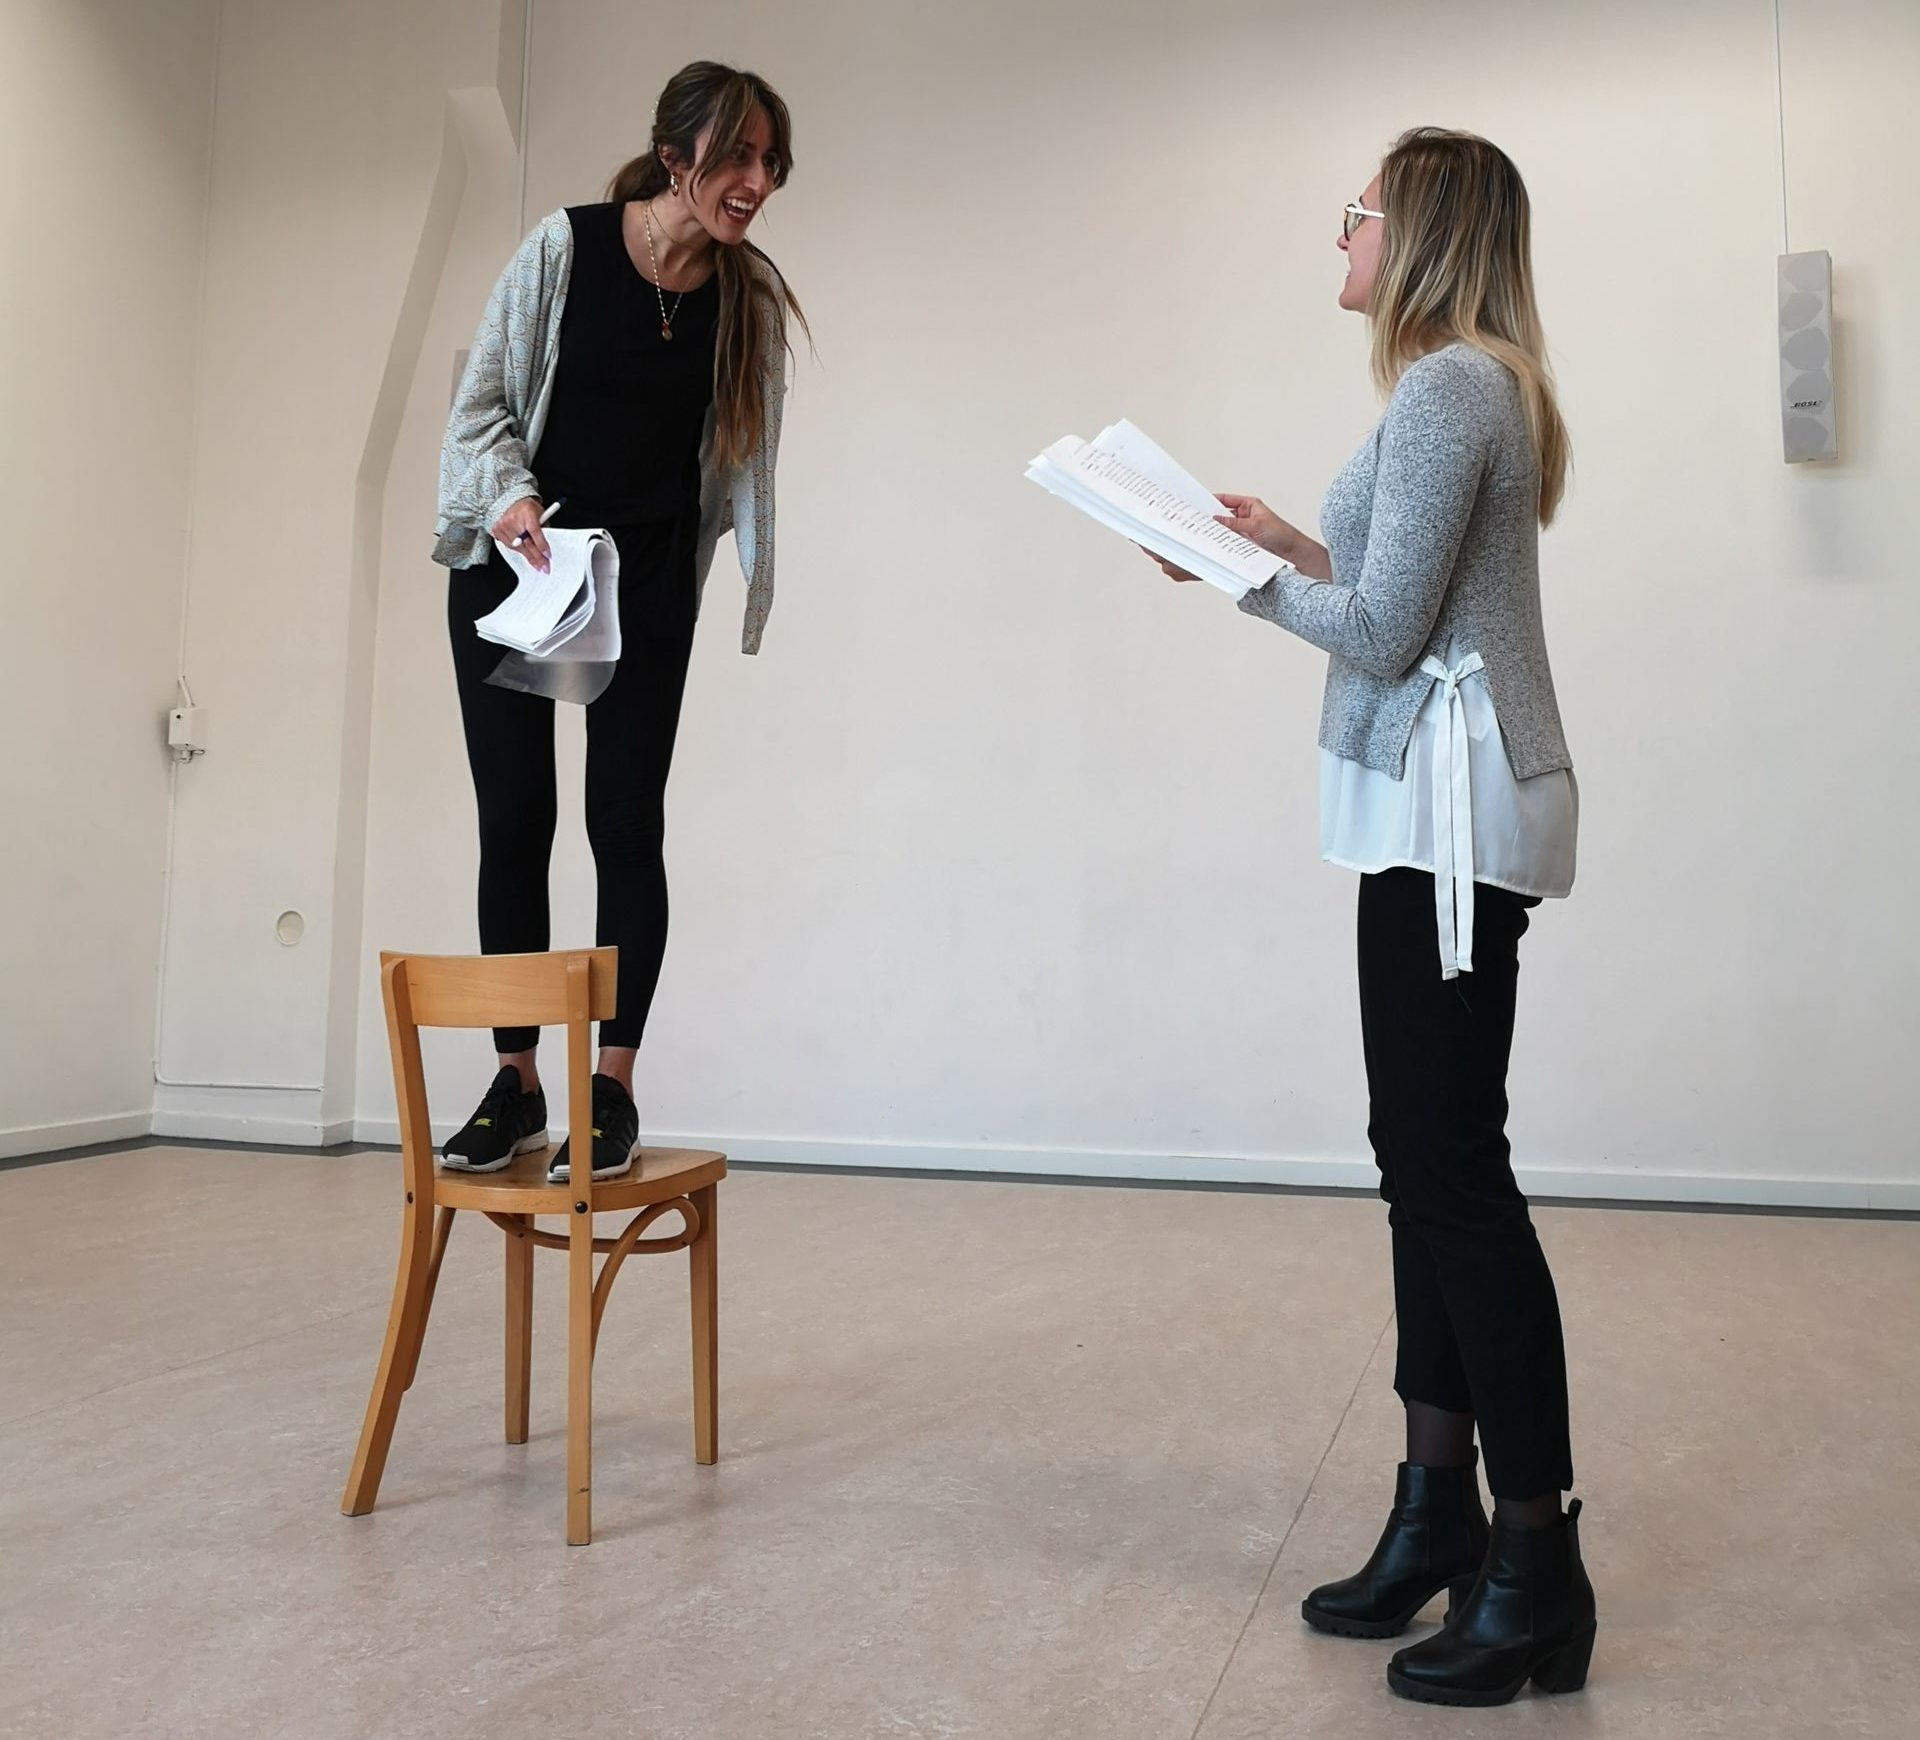 Acting Class Act Attack. Two women read lines, one is standing on the chair, laughing or screaming, the other one is standing up.